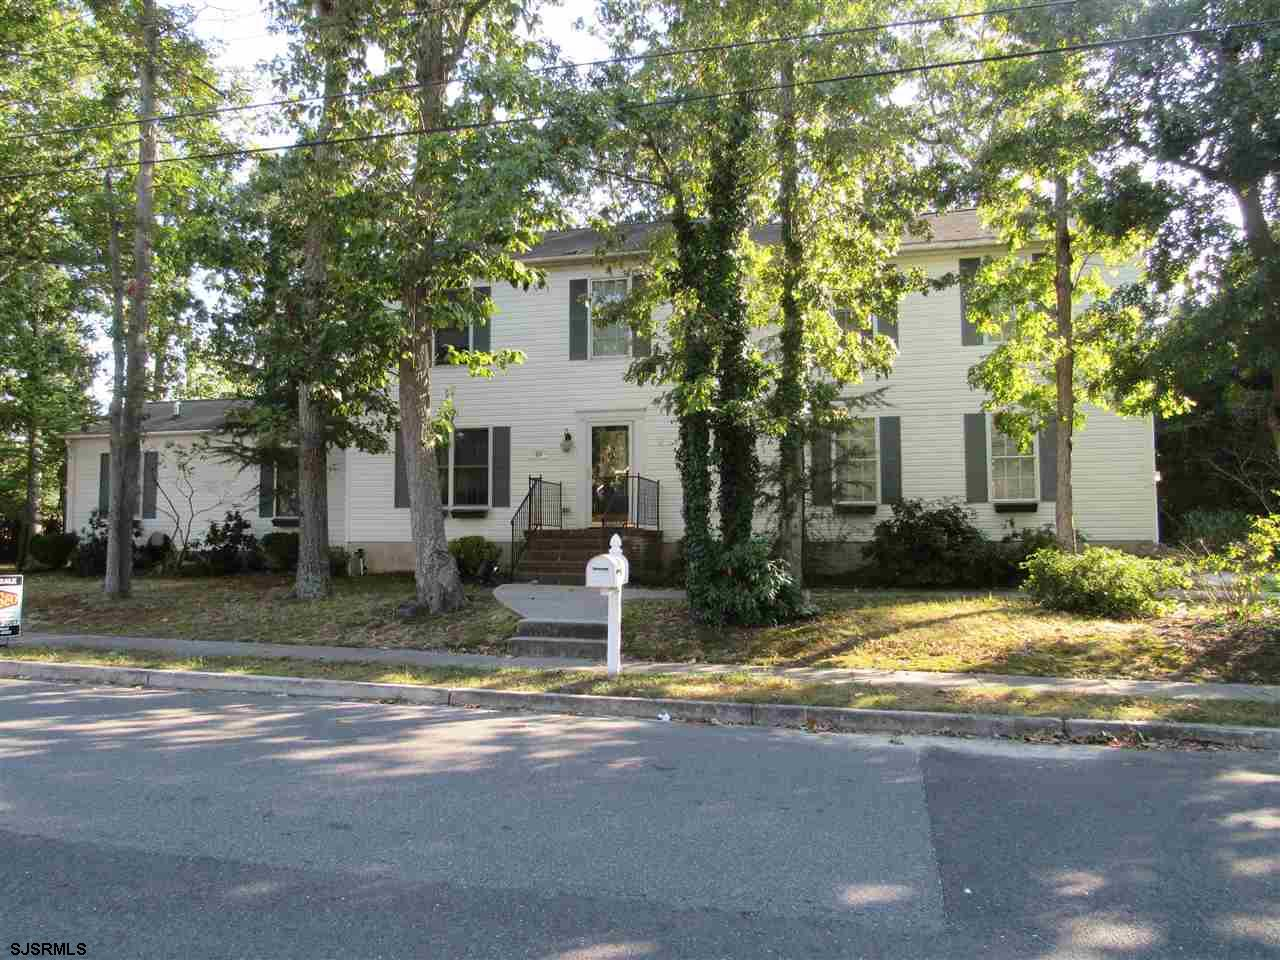 BIG HOUSE...small price! 1st floor with an open layout... sitting, dining areas, kitchen & powder room, & a huge 2 car garage, 2nd floor with 3 bedrooms, hall bath, and a XXL family room, a finished basement with a sitting area, an extra bedroom or office, next door to 501 W Vernon (mls 530937) listed for $399,000, across the street from an extensively remodeled home and near 514 W Vernon (mls 522985) sold for $402,000 on 9-4-19. Assessed at $321,500, listed at $229,000 it's ripe for a tax appeal, Update it at once or take your time, it's clean & ready to go.